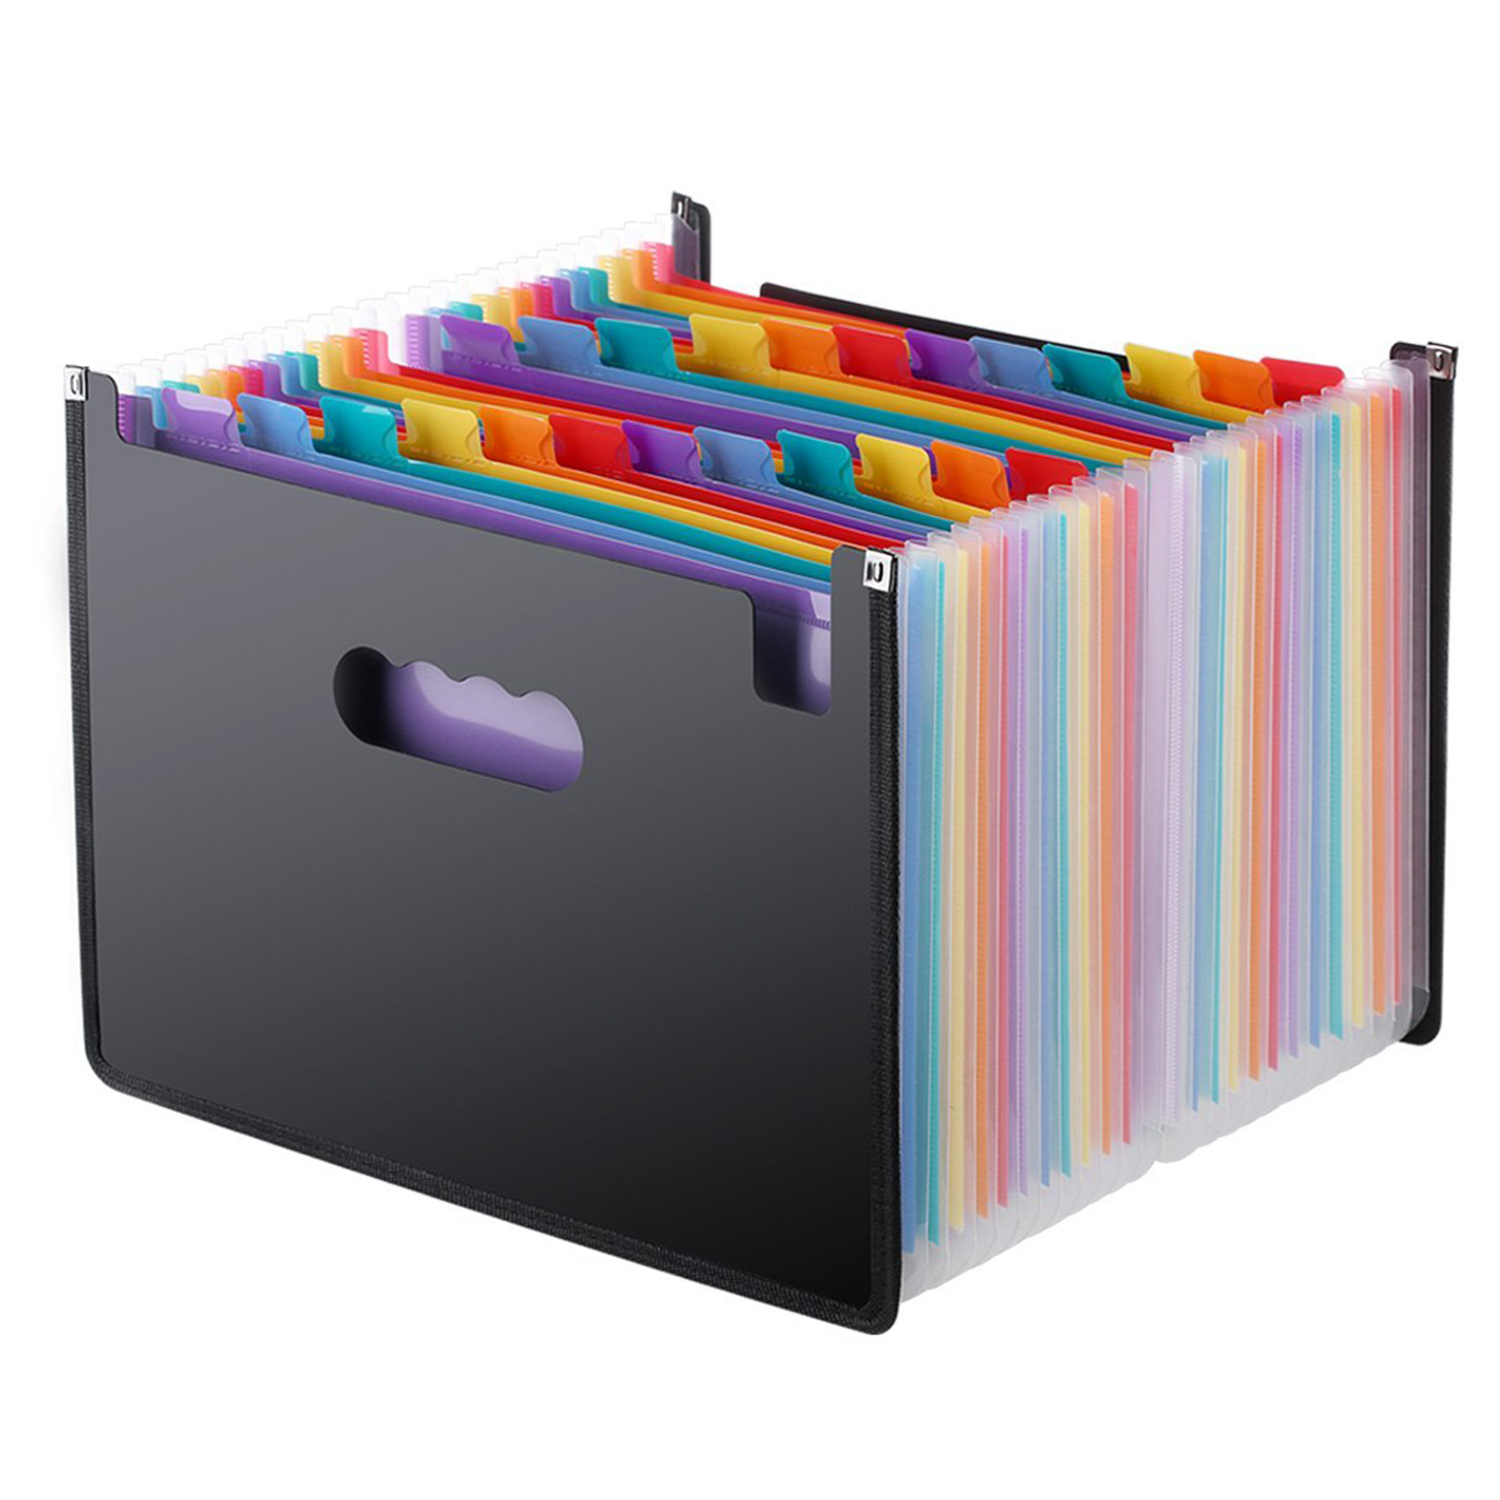 BLEL Hot Expanding File Folder 24 Pockets, black Accordion A4 folder 1 pc 13 index pockets layers document file folder expanding walle a4 size papers bag more to send a plastic ruler